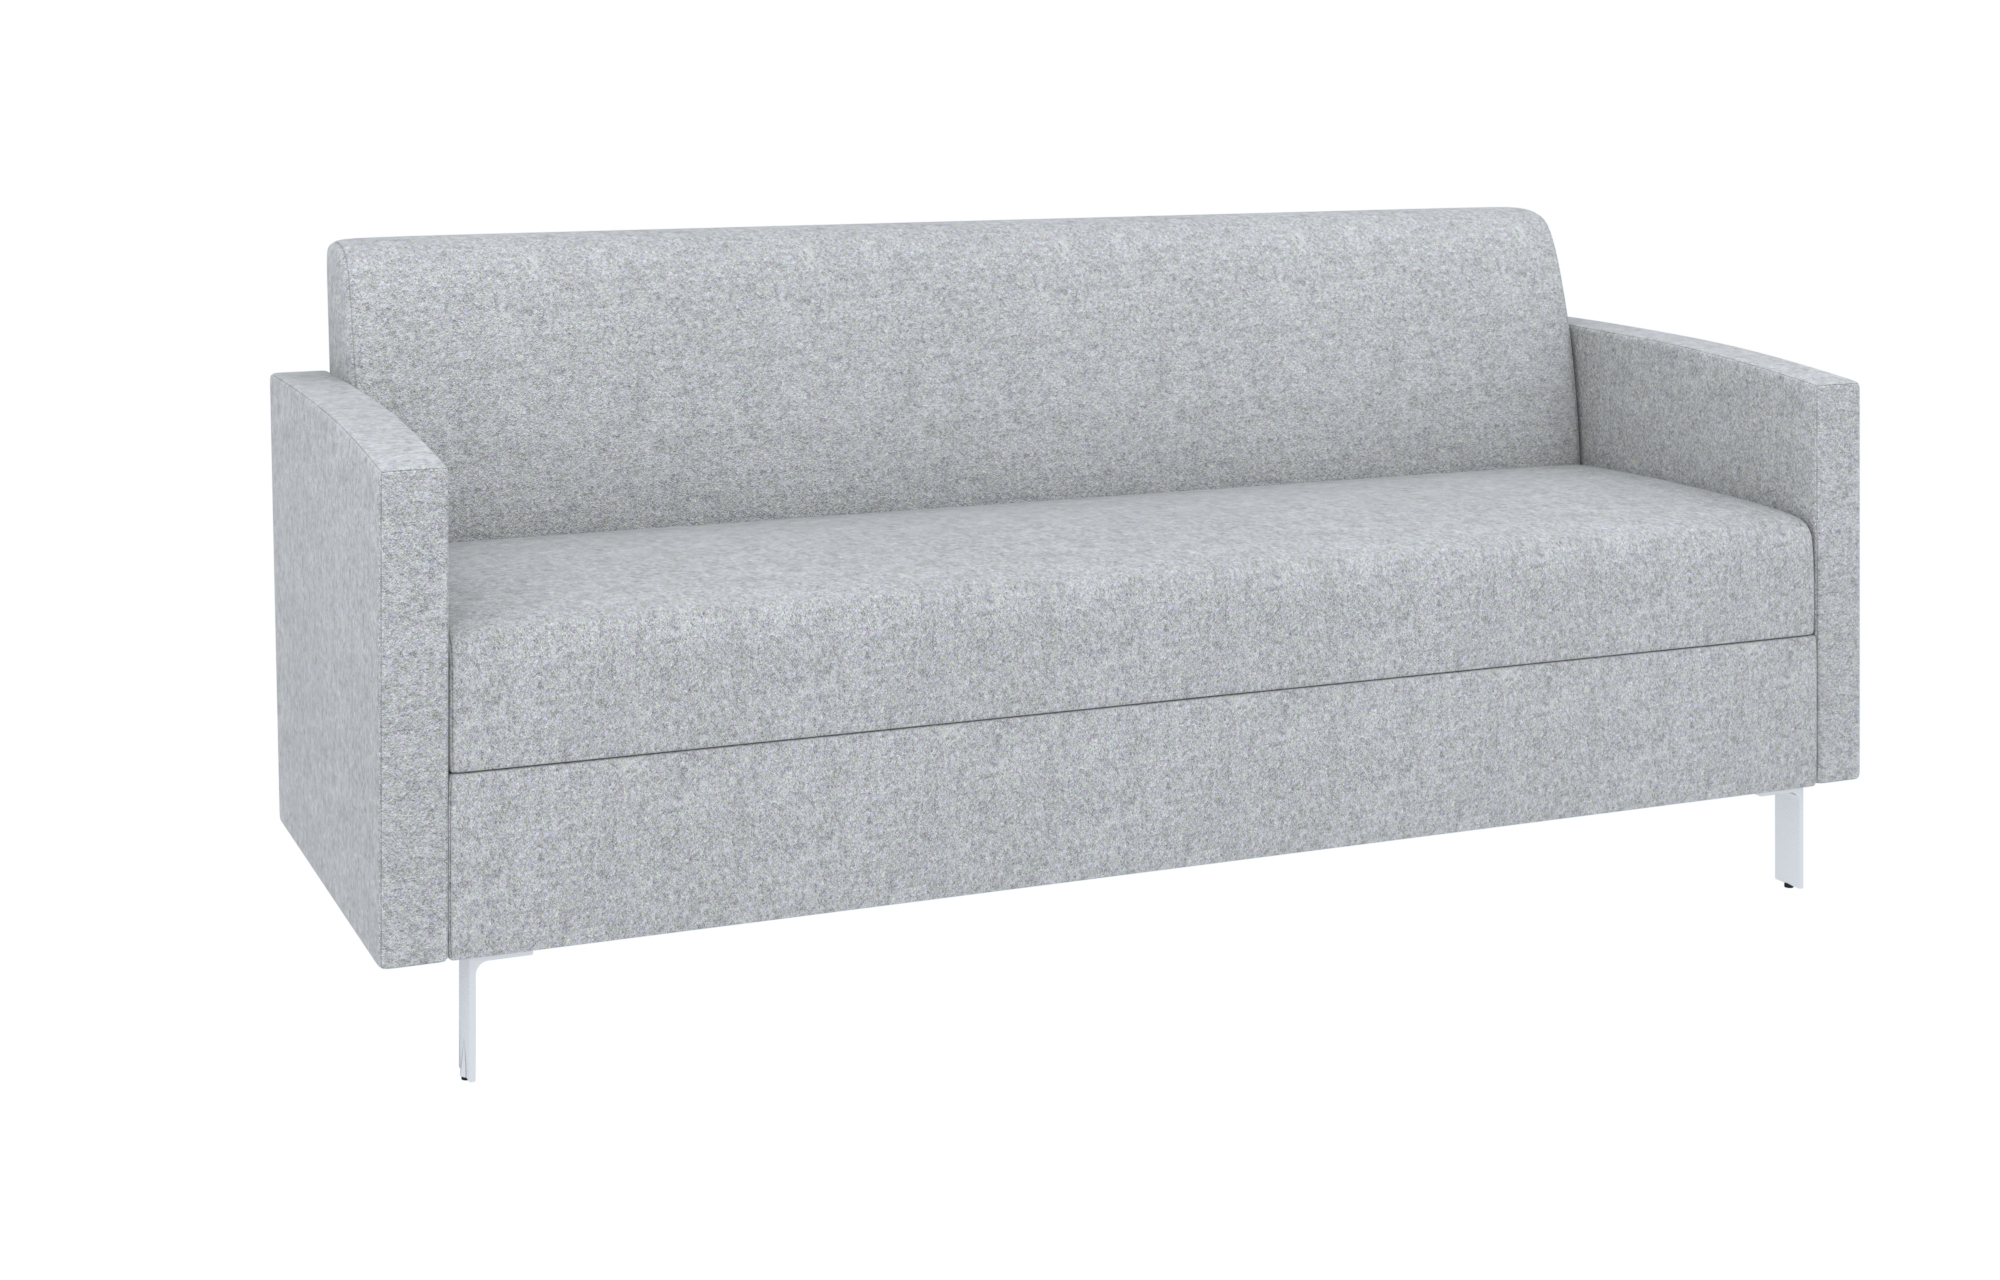 Hickory Contract Gemini Sofa GE-230LR